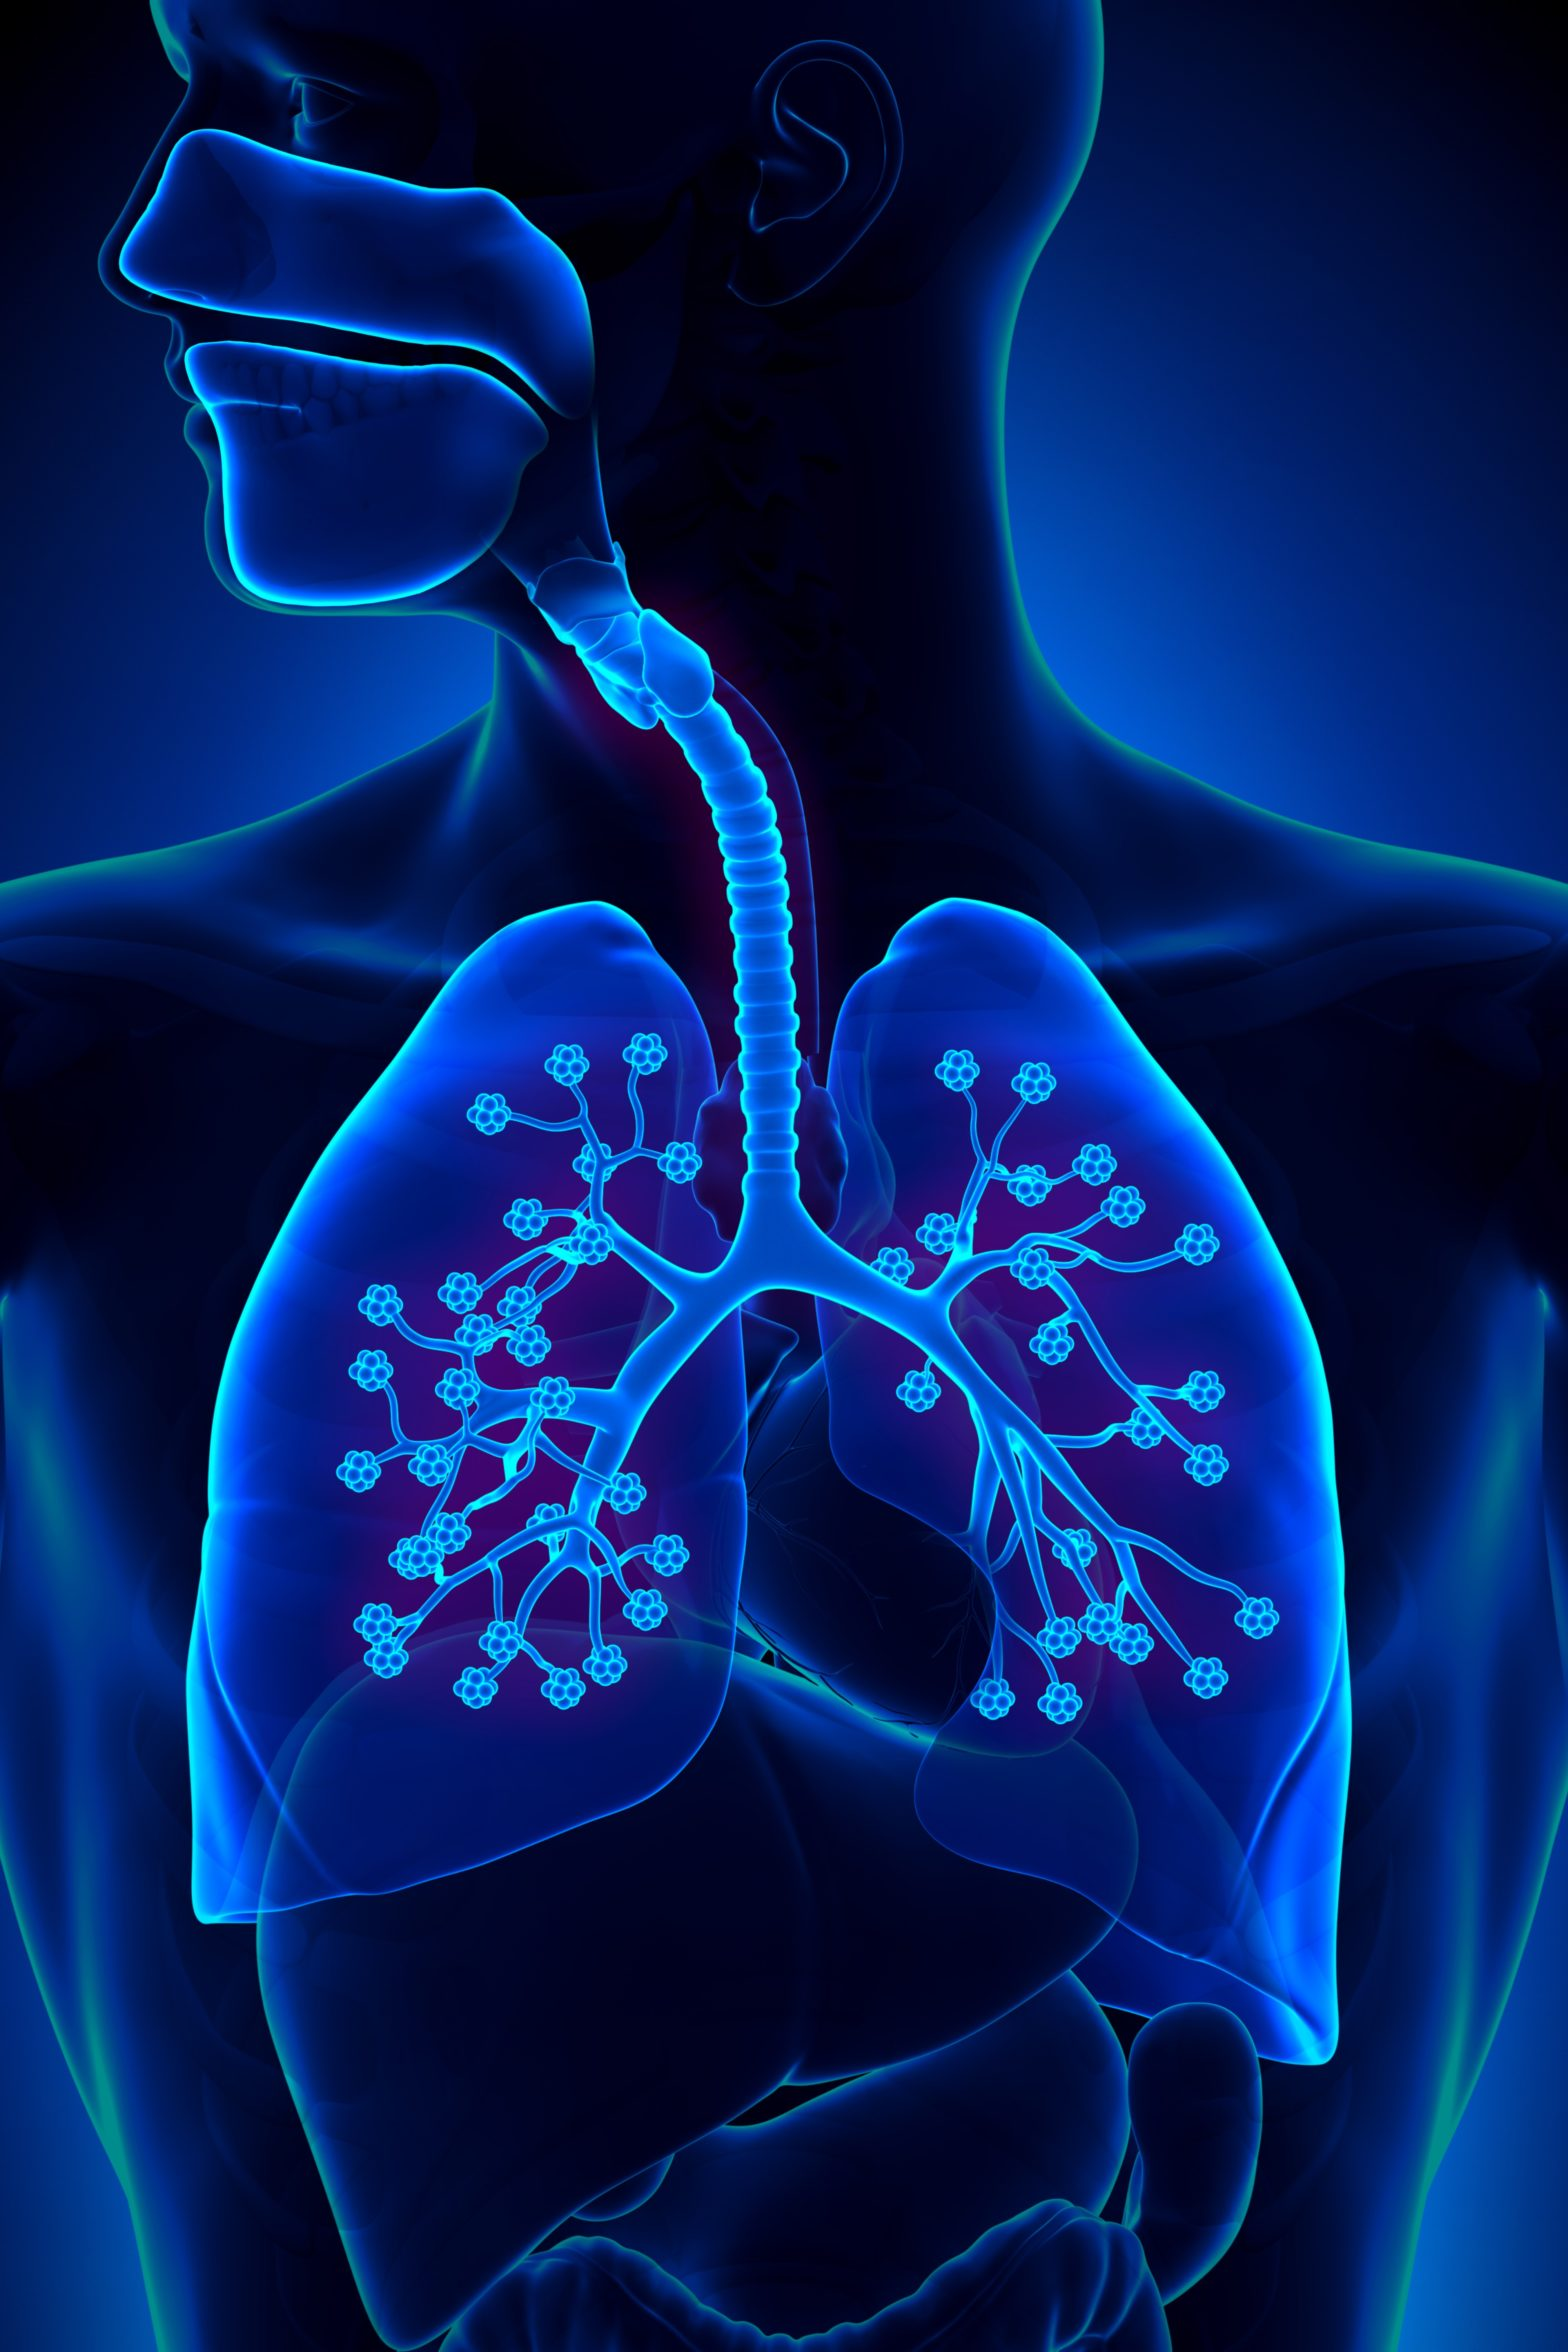 A new era in cystic fibrosis therapy